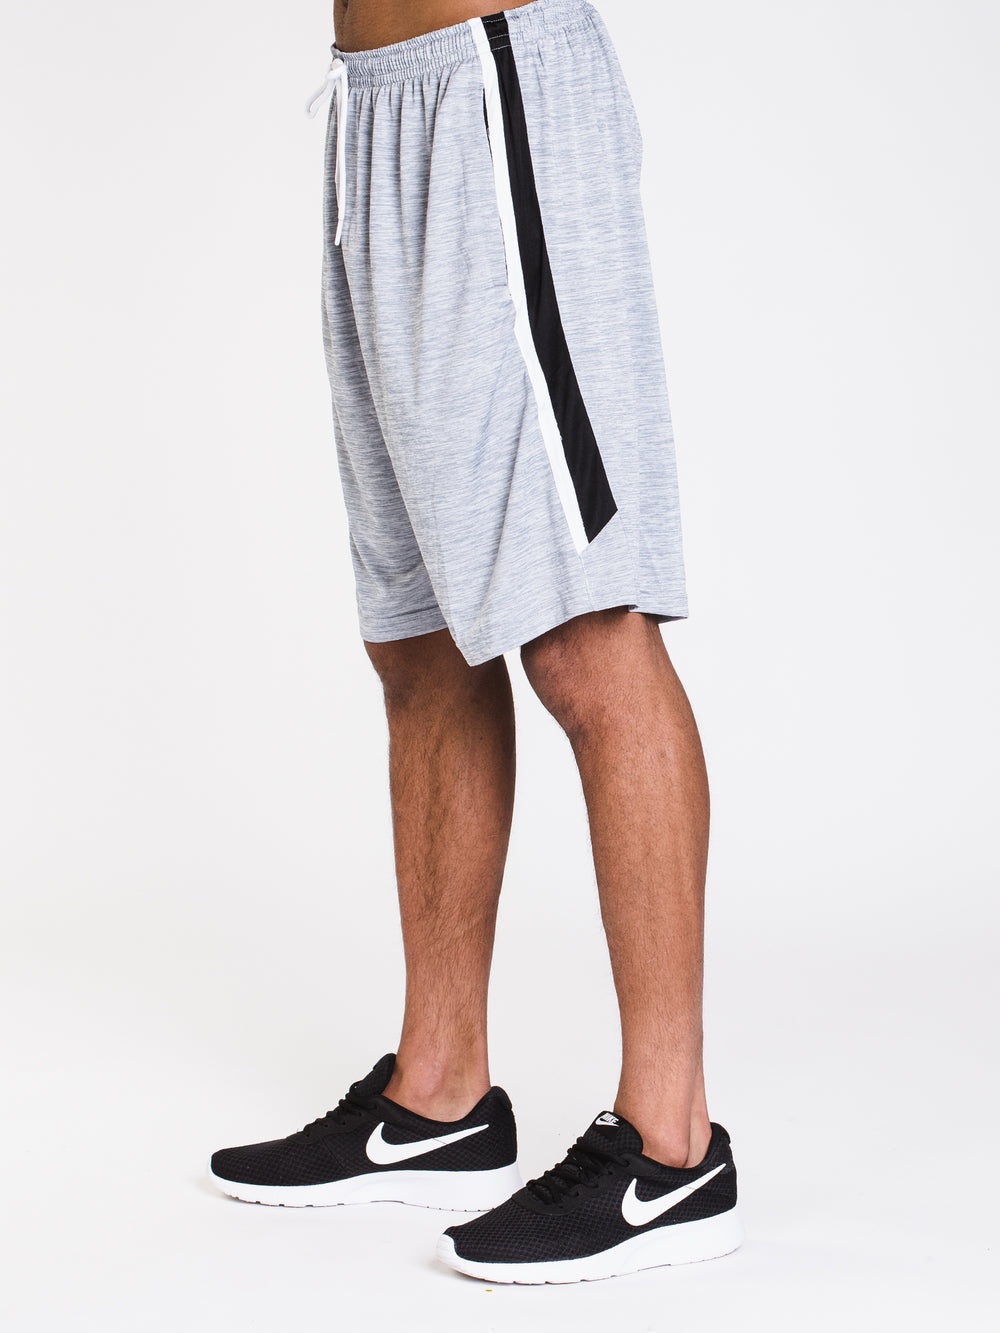 MENS CATONIC ATHLETIC SHORT - CLEARANCE